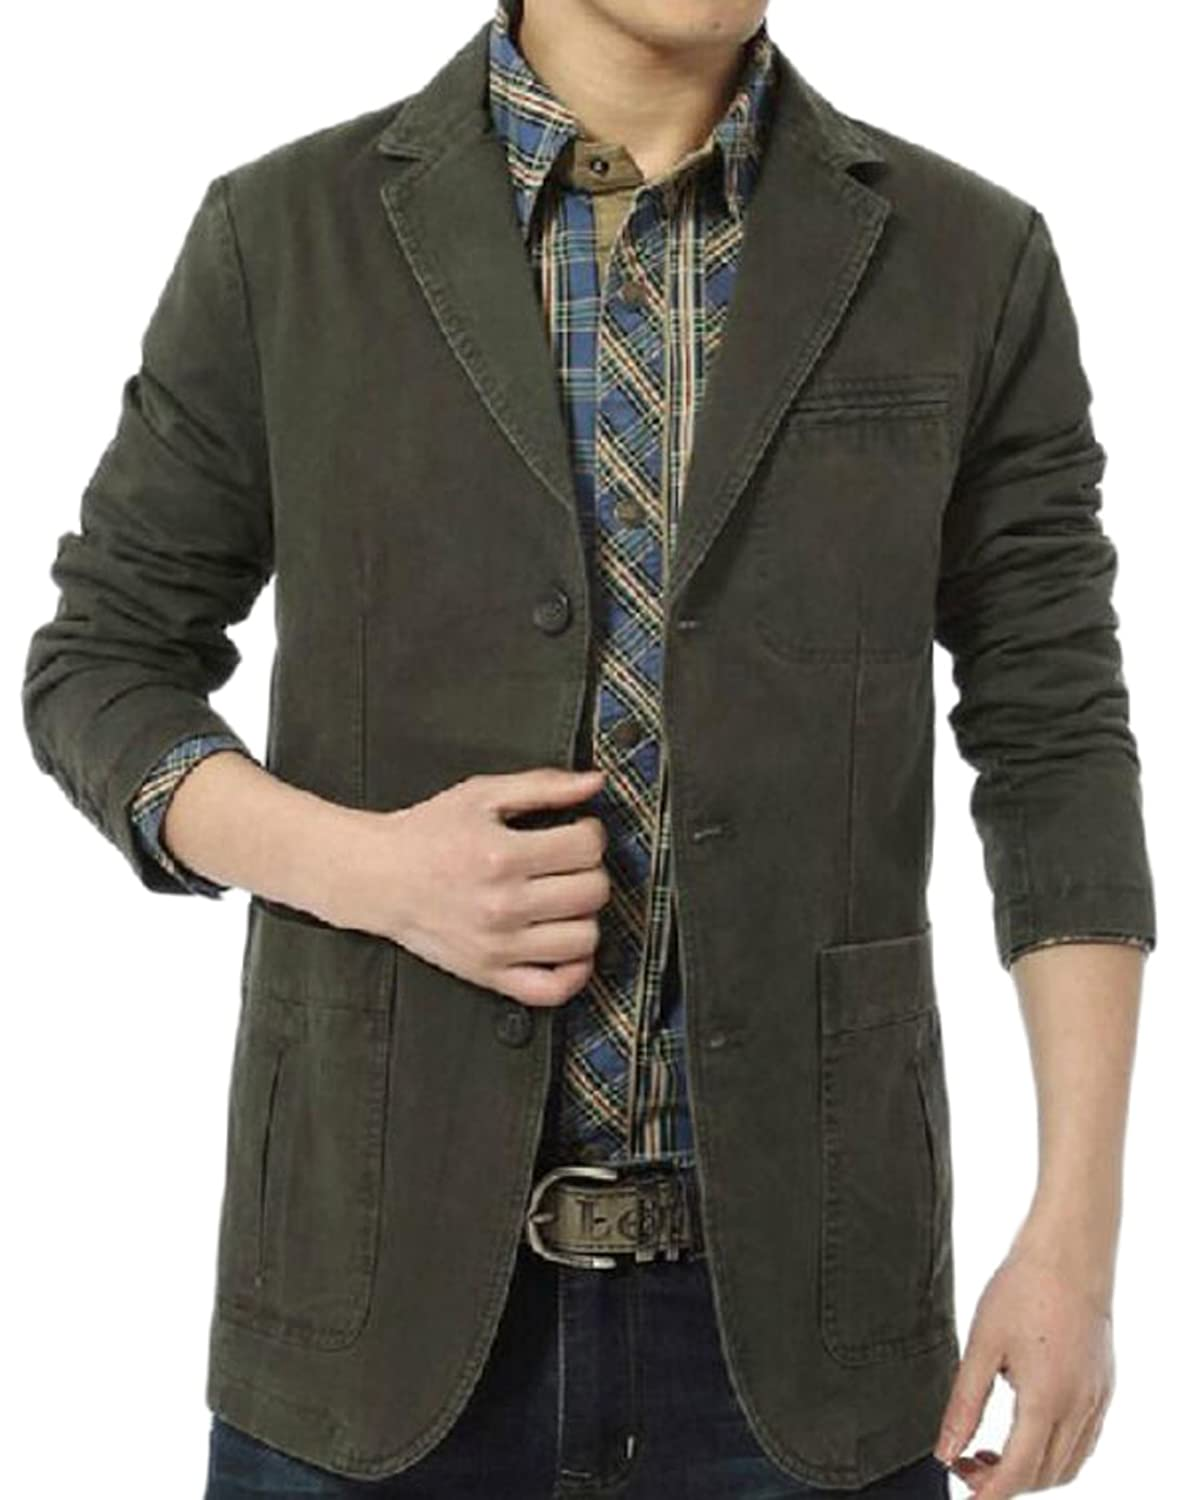 free shipping Vska Men s Midweight Cotton Button Closure Blazers Jacket 5ce743b5c